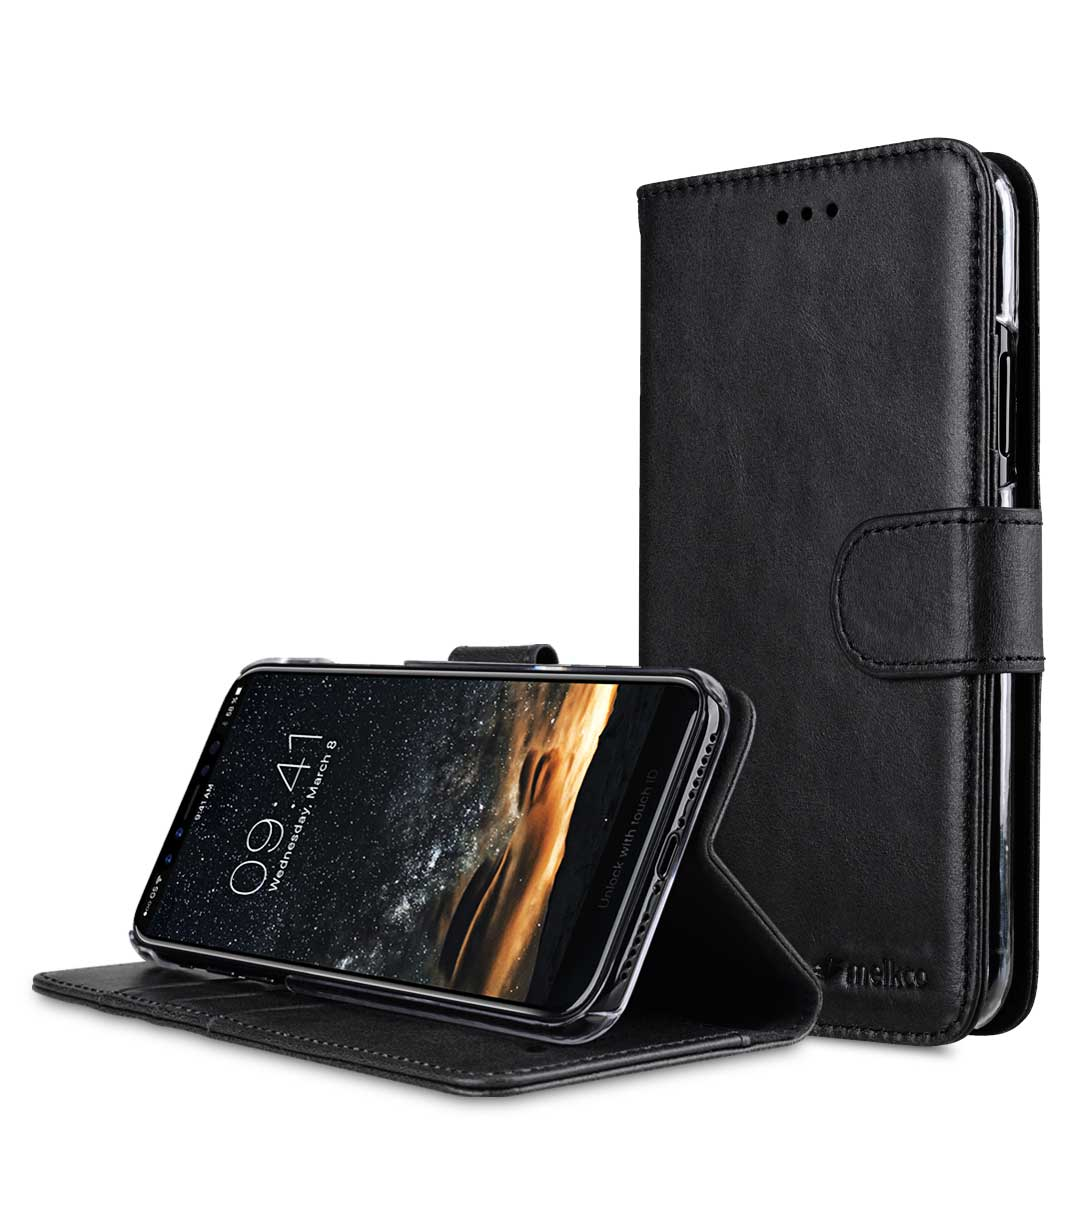 premium leather case for apple iphone x wallet book. Black Bedroom Furniture Sets. Home Design Ideas